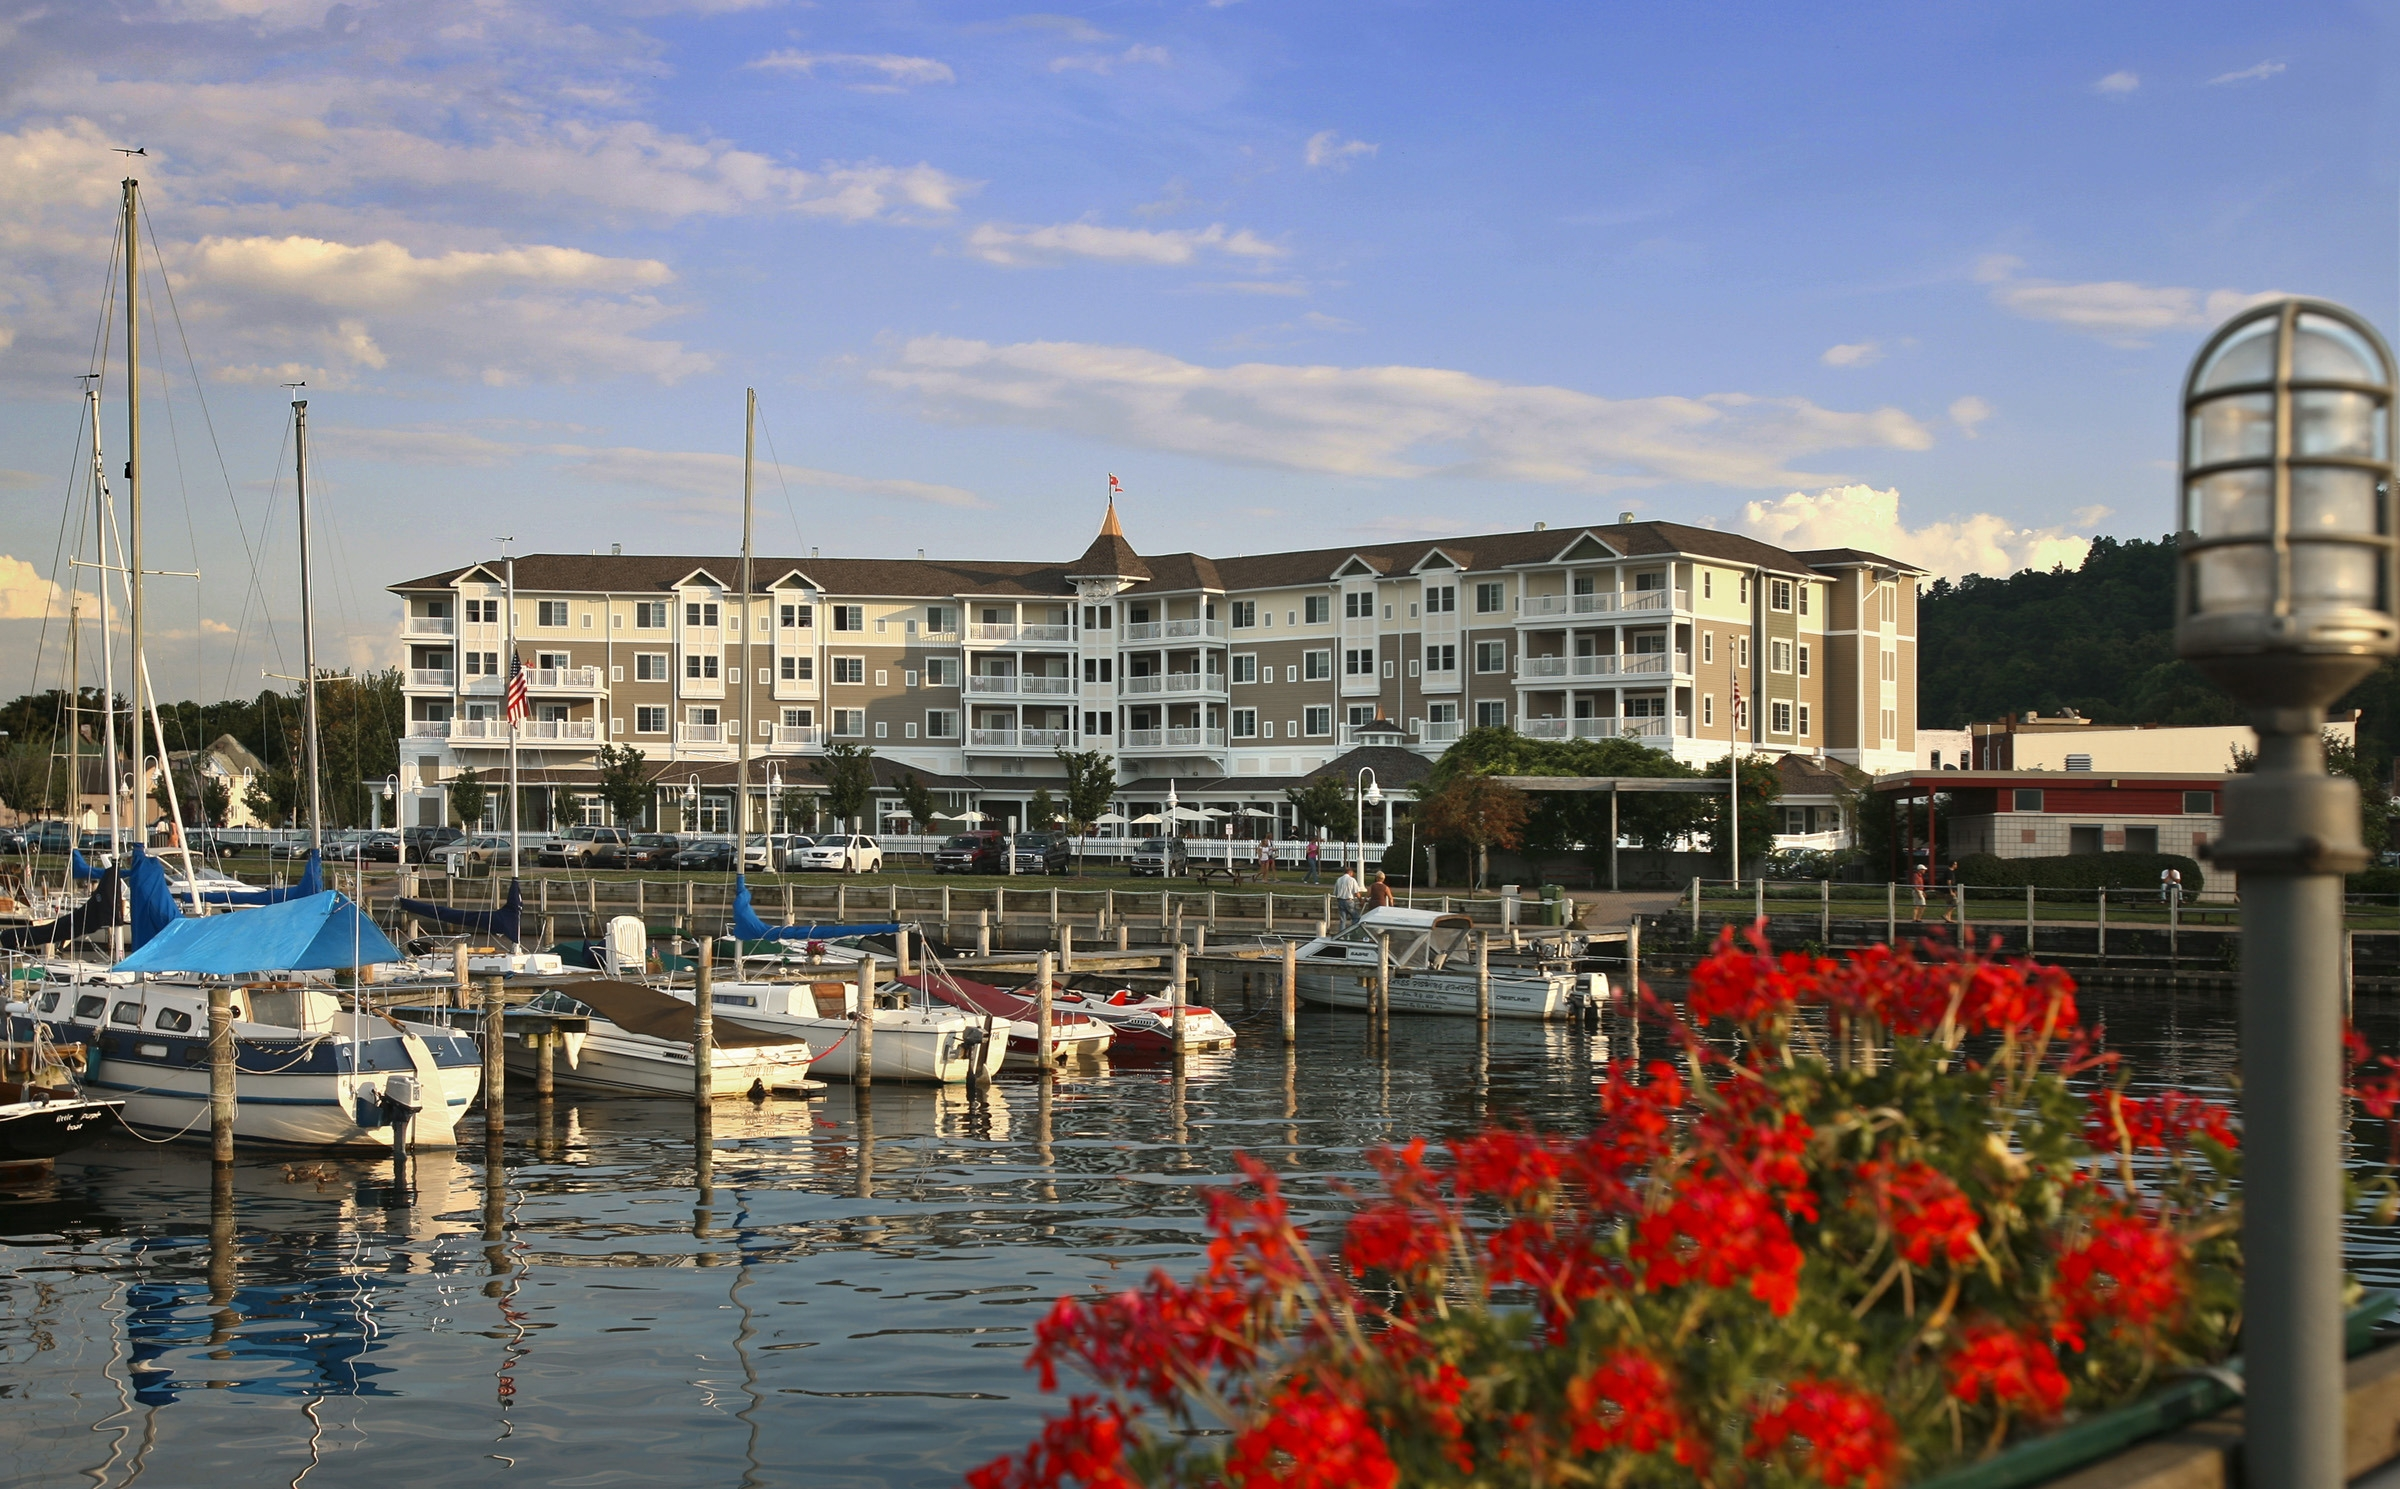 The Watkins Glen Harbor Hotel topped the list of 10 Best Waterfront Hotels in America in a 2016 rating by USA Today readers.